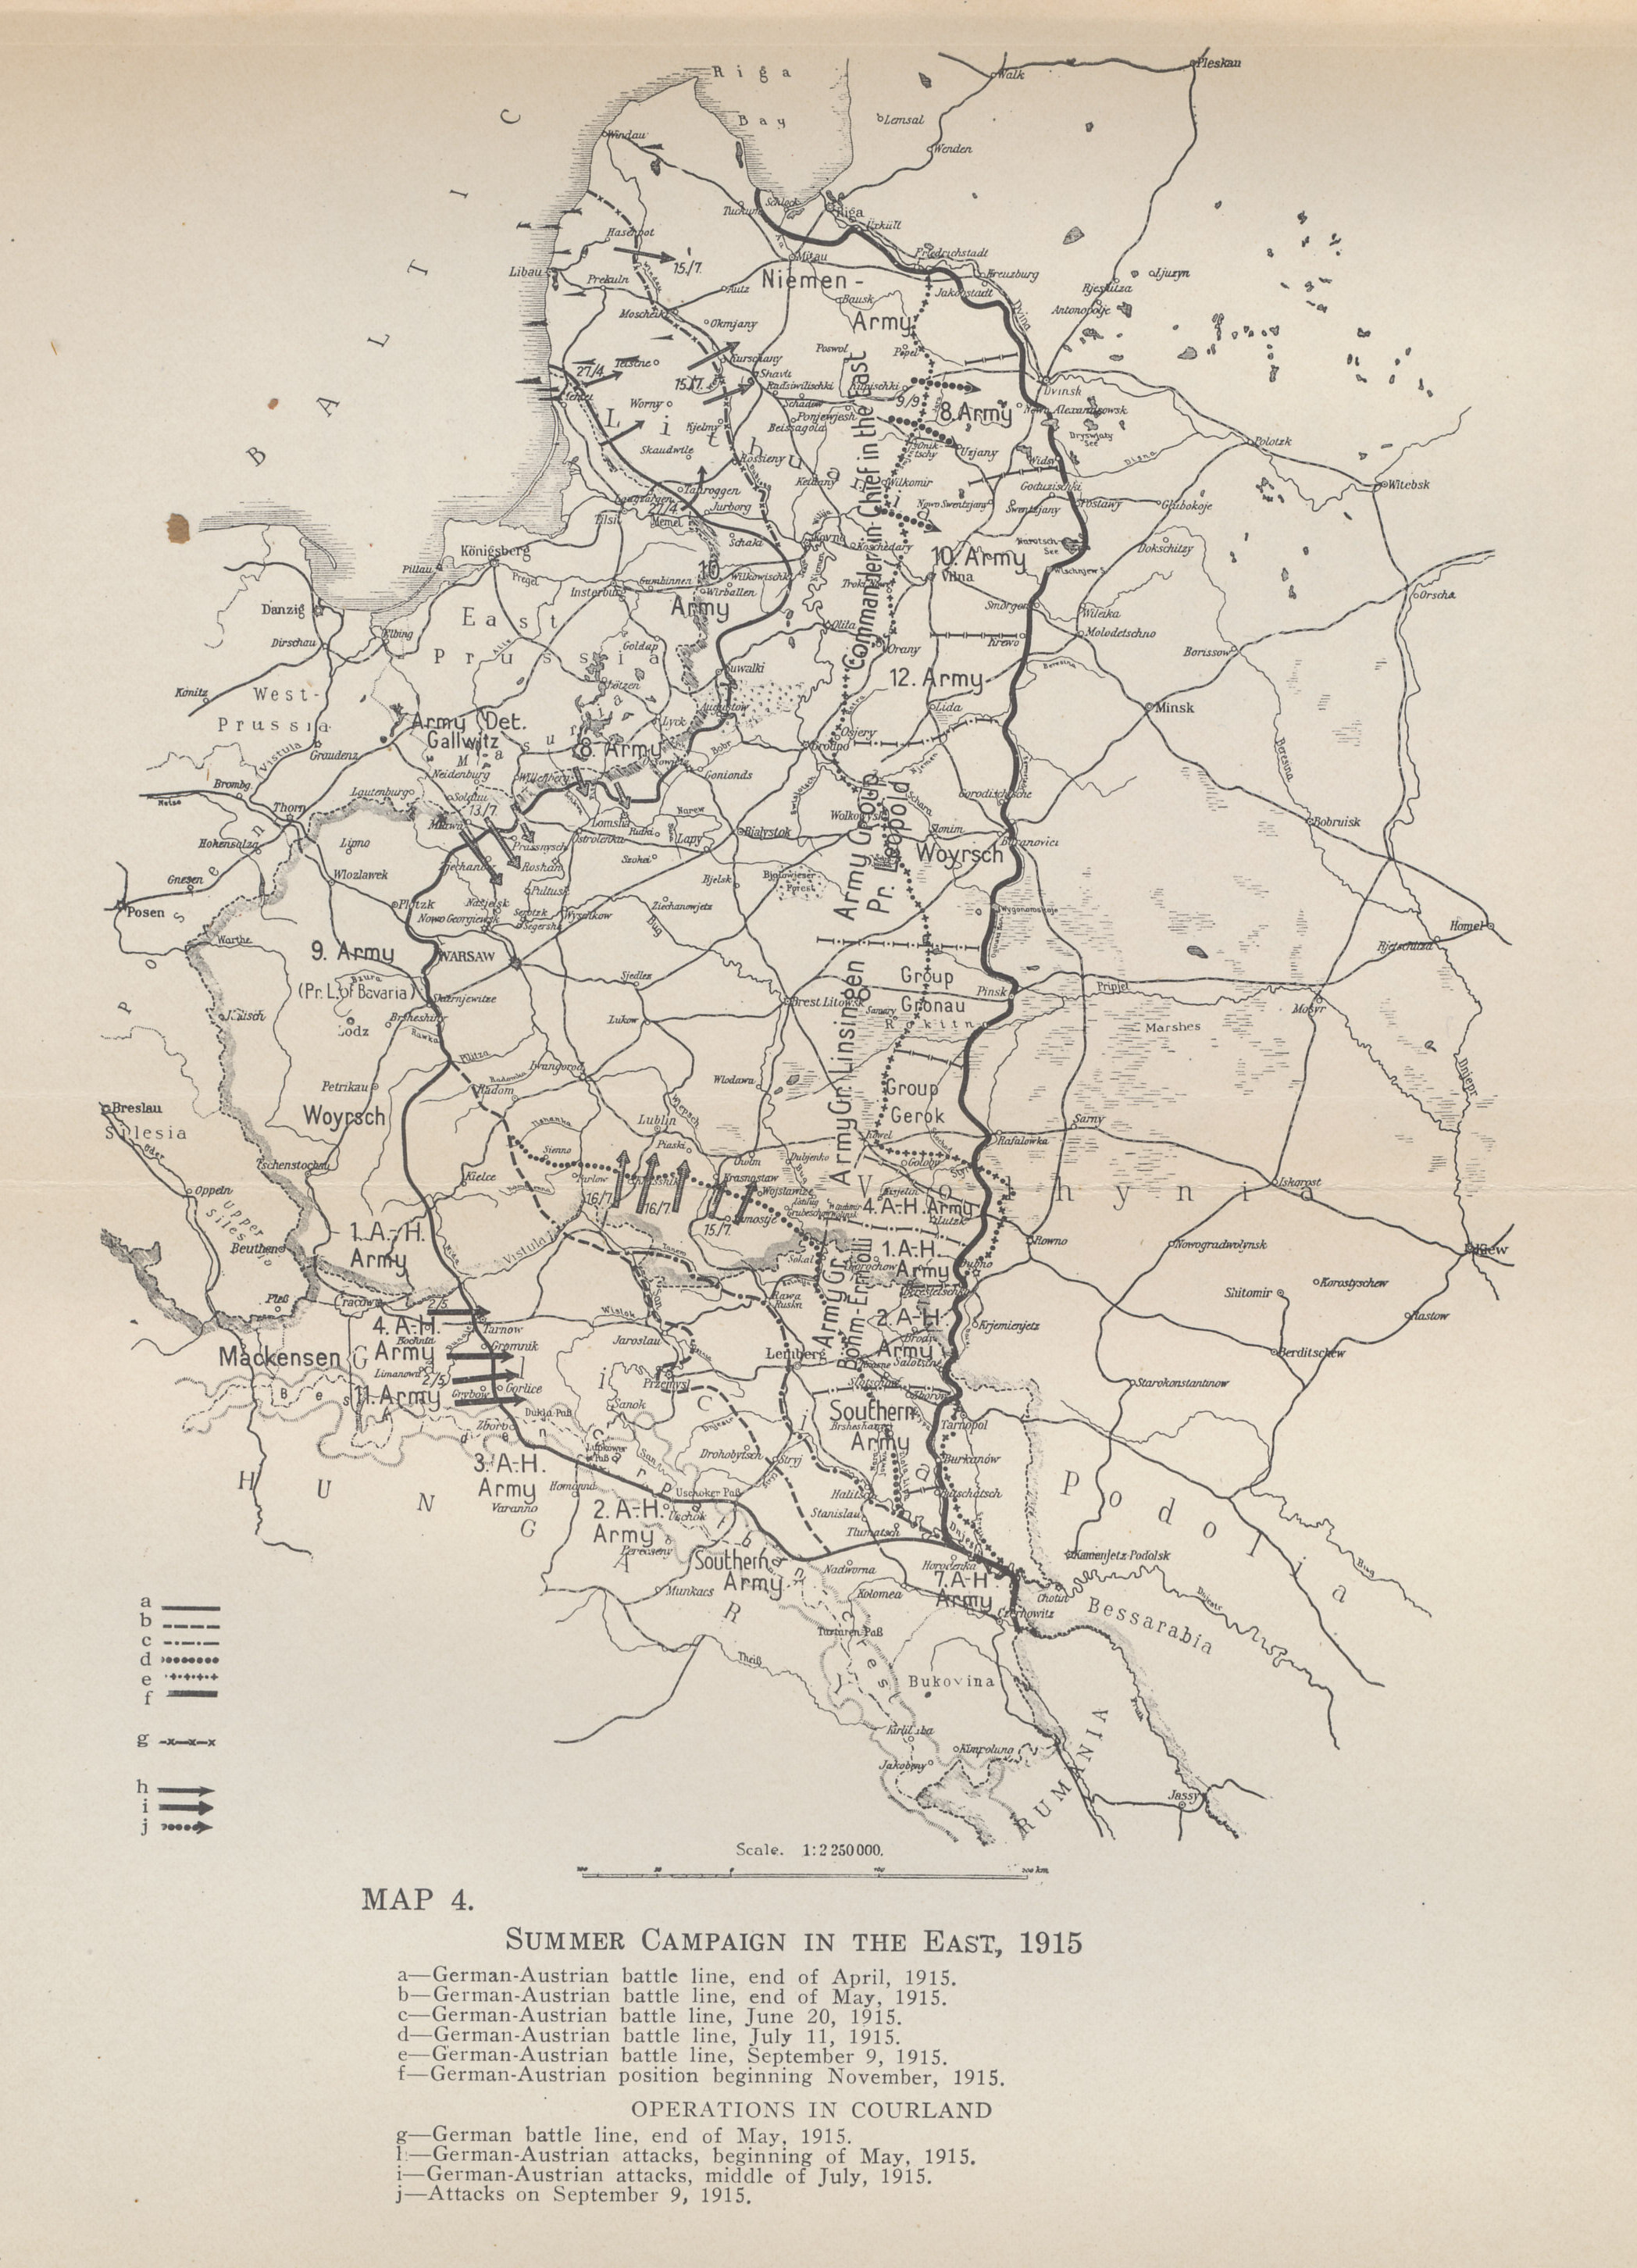 Map of the Eastern Front in the summer of 1915 as the German-Austro-Hungarian Gorlice-Tarnow Offensive continued to advance against the retreating Russians. From 'The German General Staff and its Decisions, 1914-1916' by General von Falkenhayn.